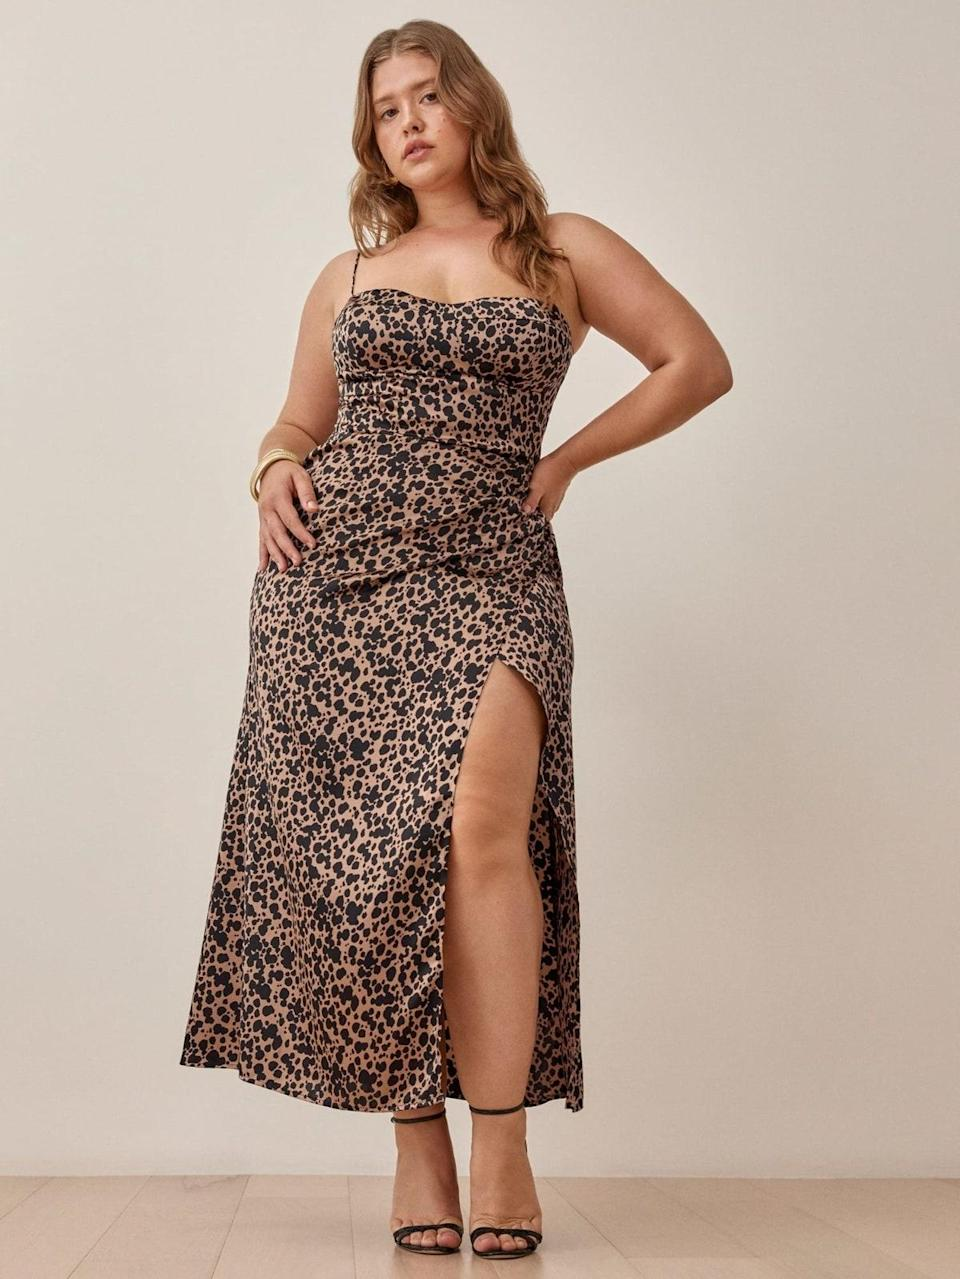 """Listen carefully…to the sound of necks snapping as you make your way to the buffet in this leopard stunner. $298, Reformation. <a href=""""https://www.thereformation.com/products/marguerite-dress?color=Blitz"""" rel=""""nofollow noopener"""" target=""""_blank"""" data-ylk=""""slk:Get it now!"""" class=""""link rapid-noclick-resp"""">Get it now!</a>"""